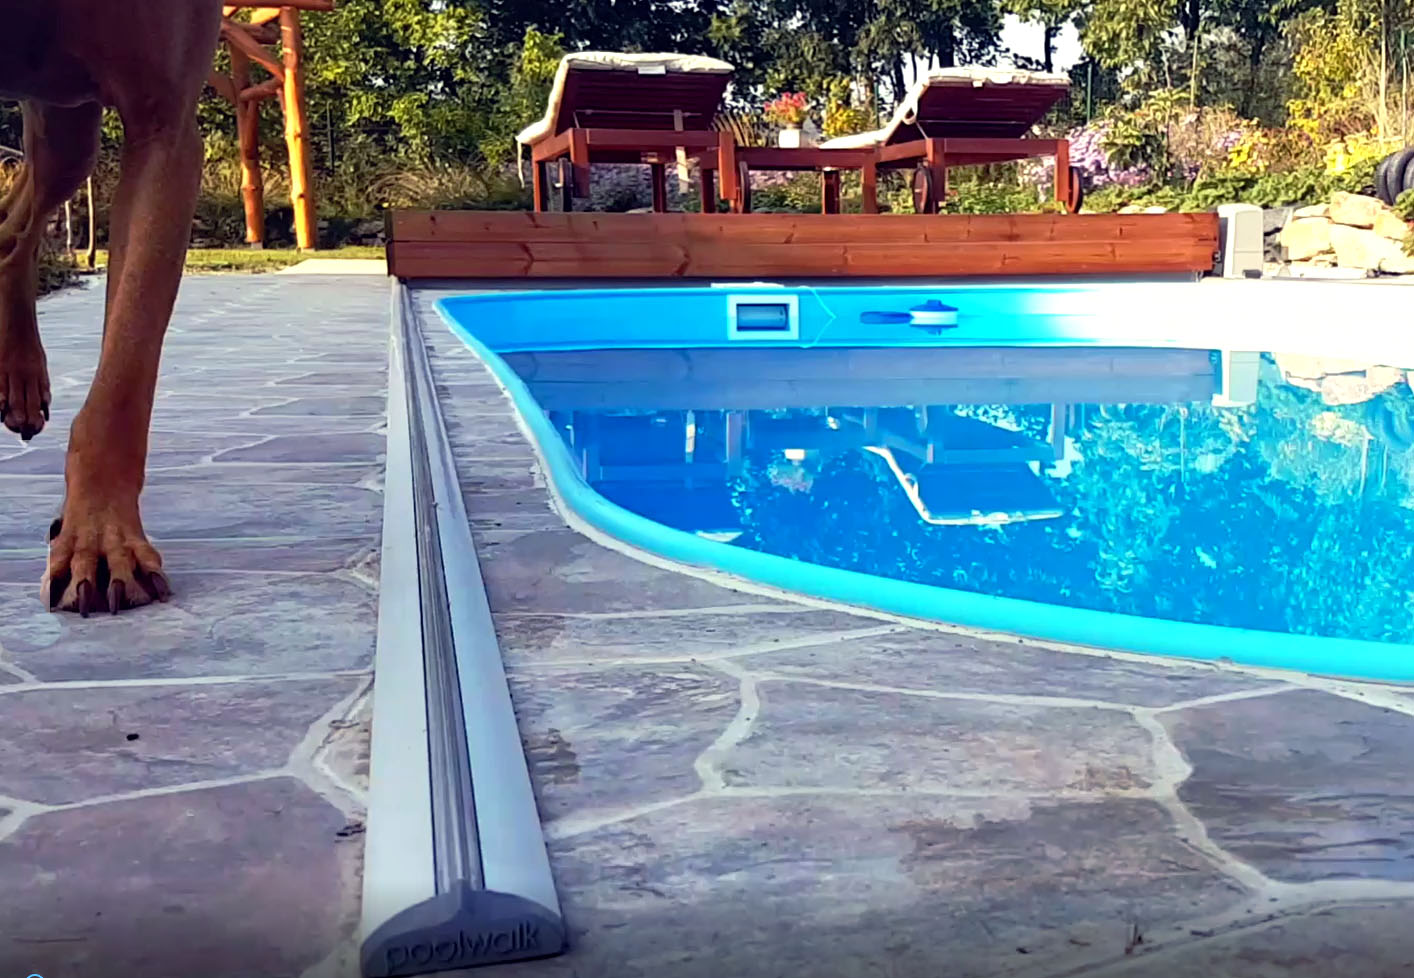 Video poolwalk pool cover Slovakia Pezinok